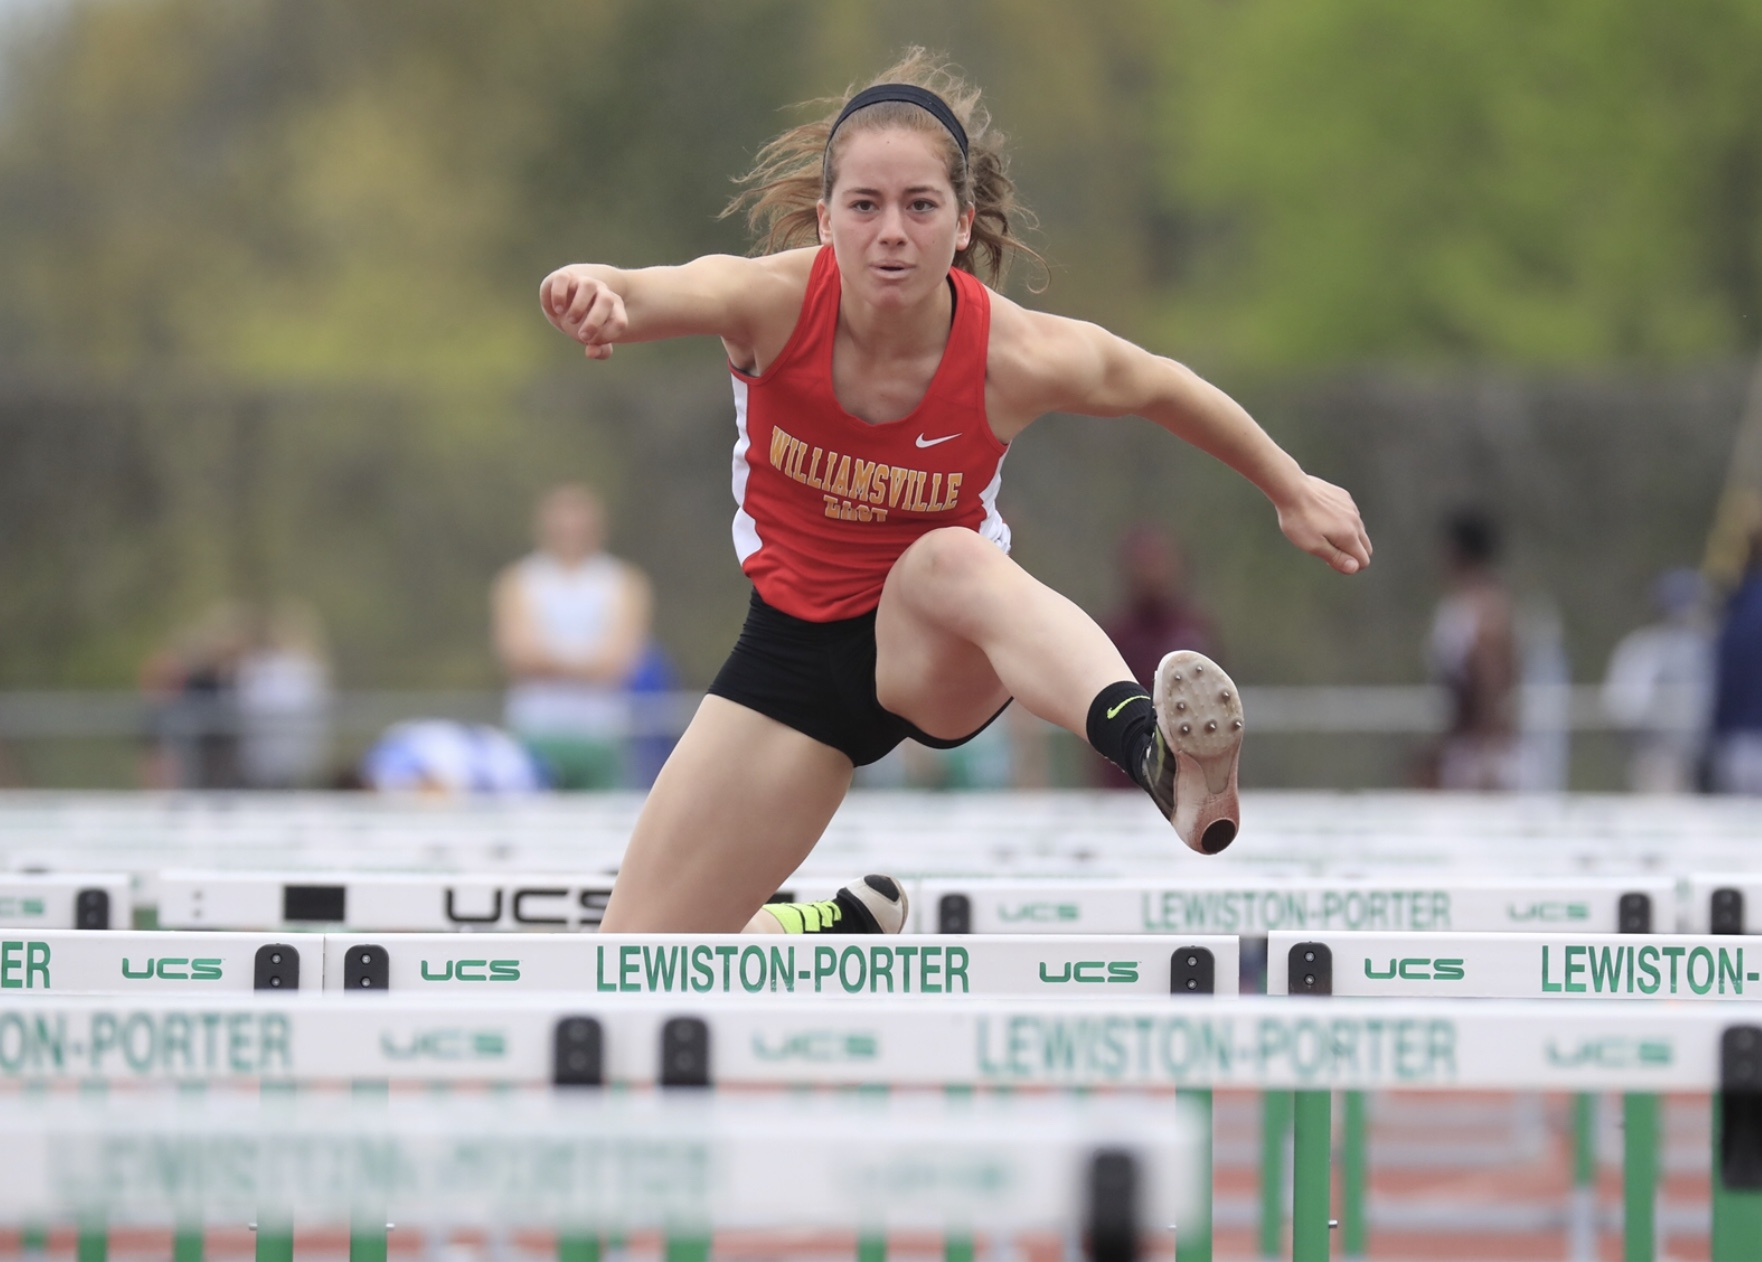 Williamsville East Girl's Track and Field